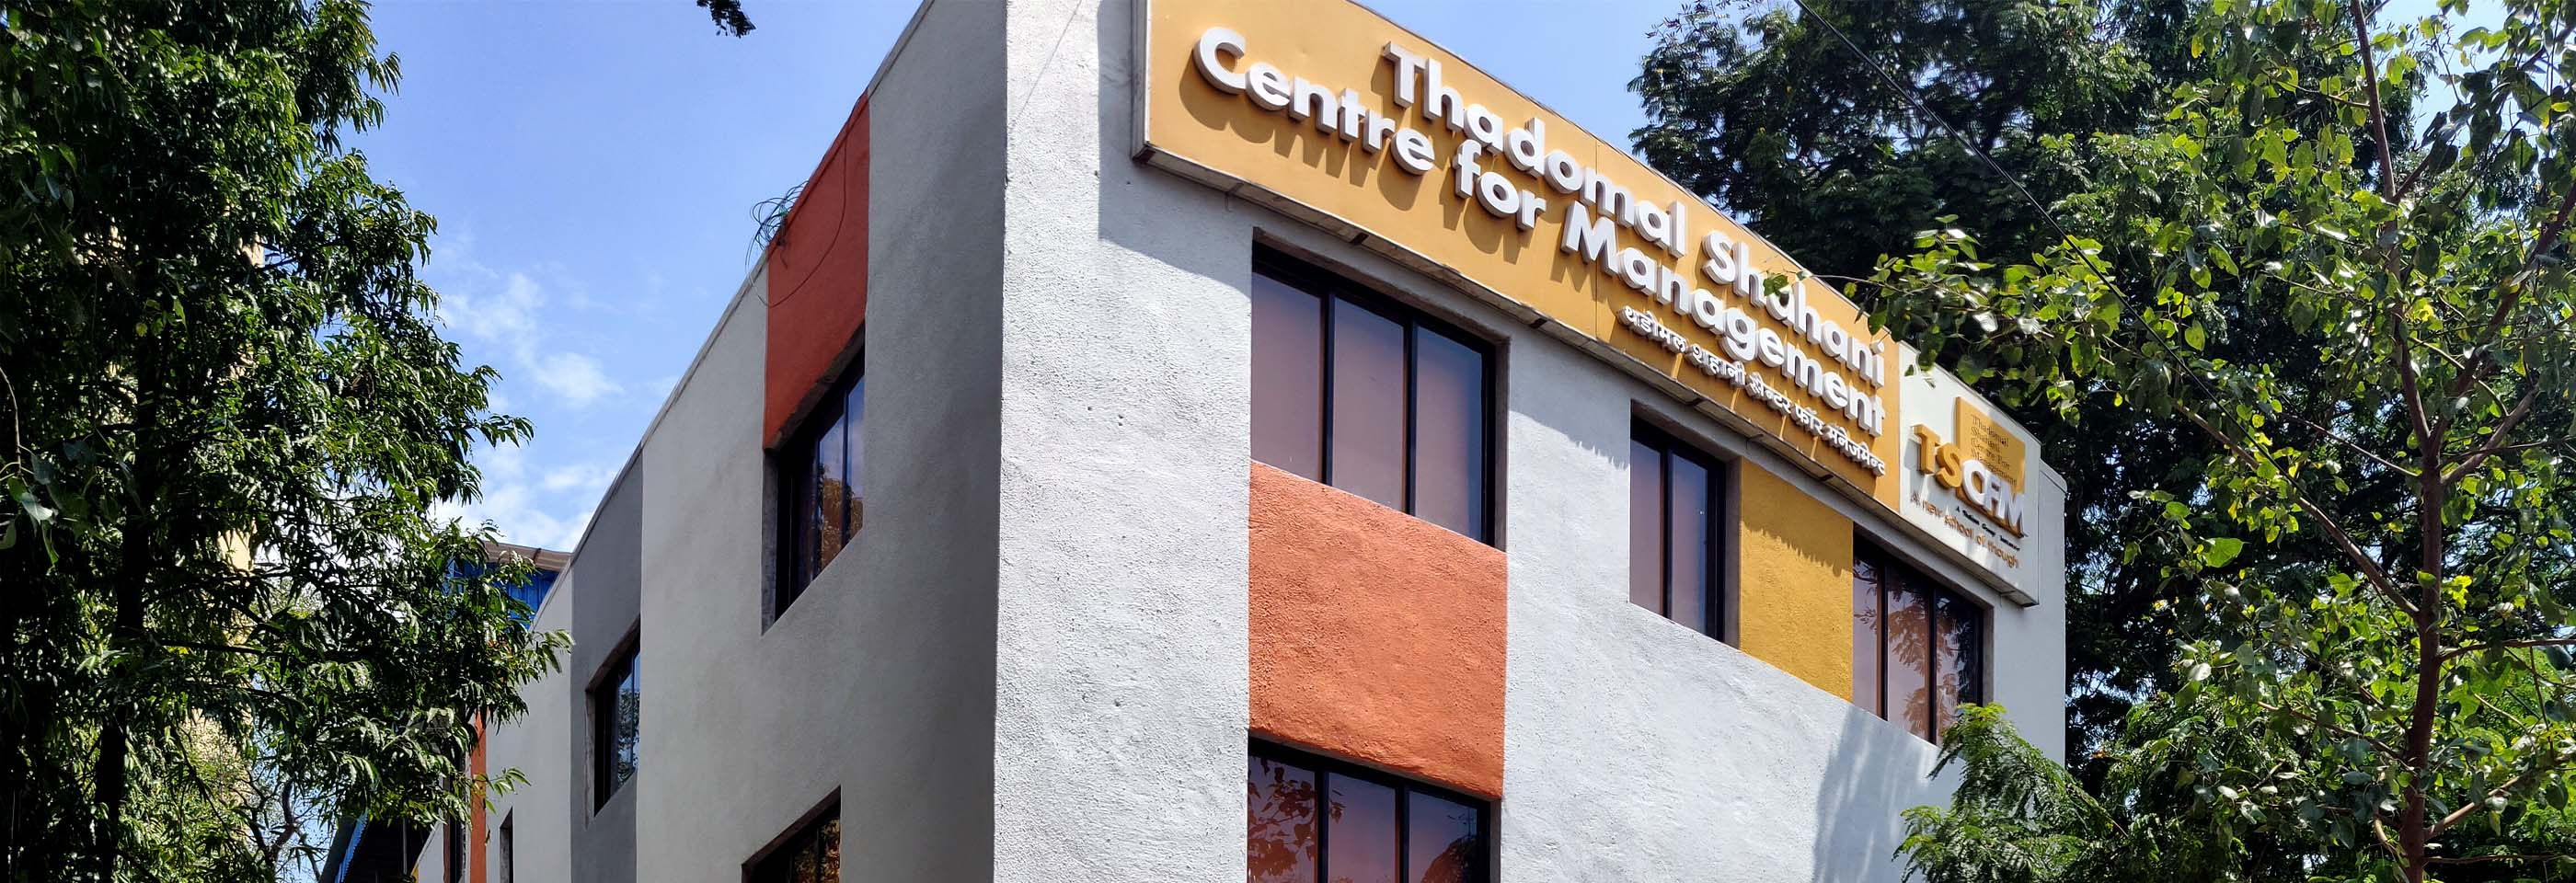 TSCFM launches its new Campus at Mulund